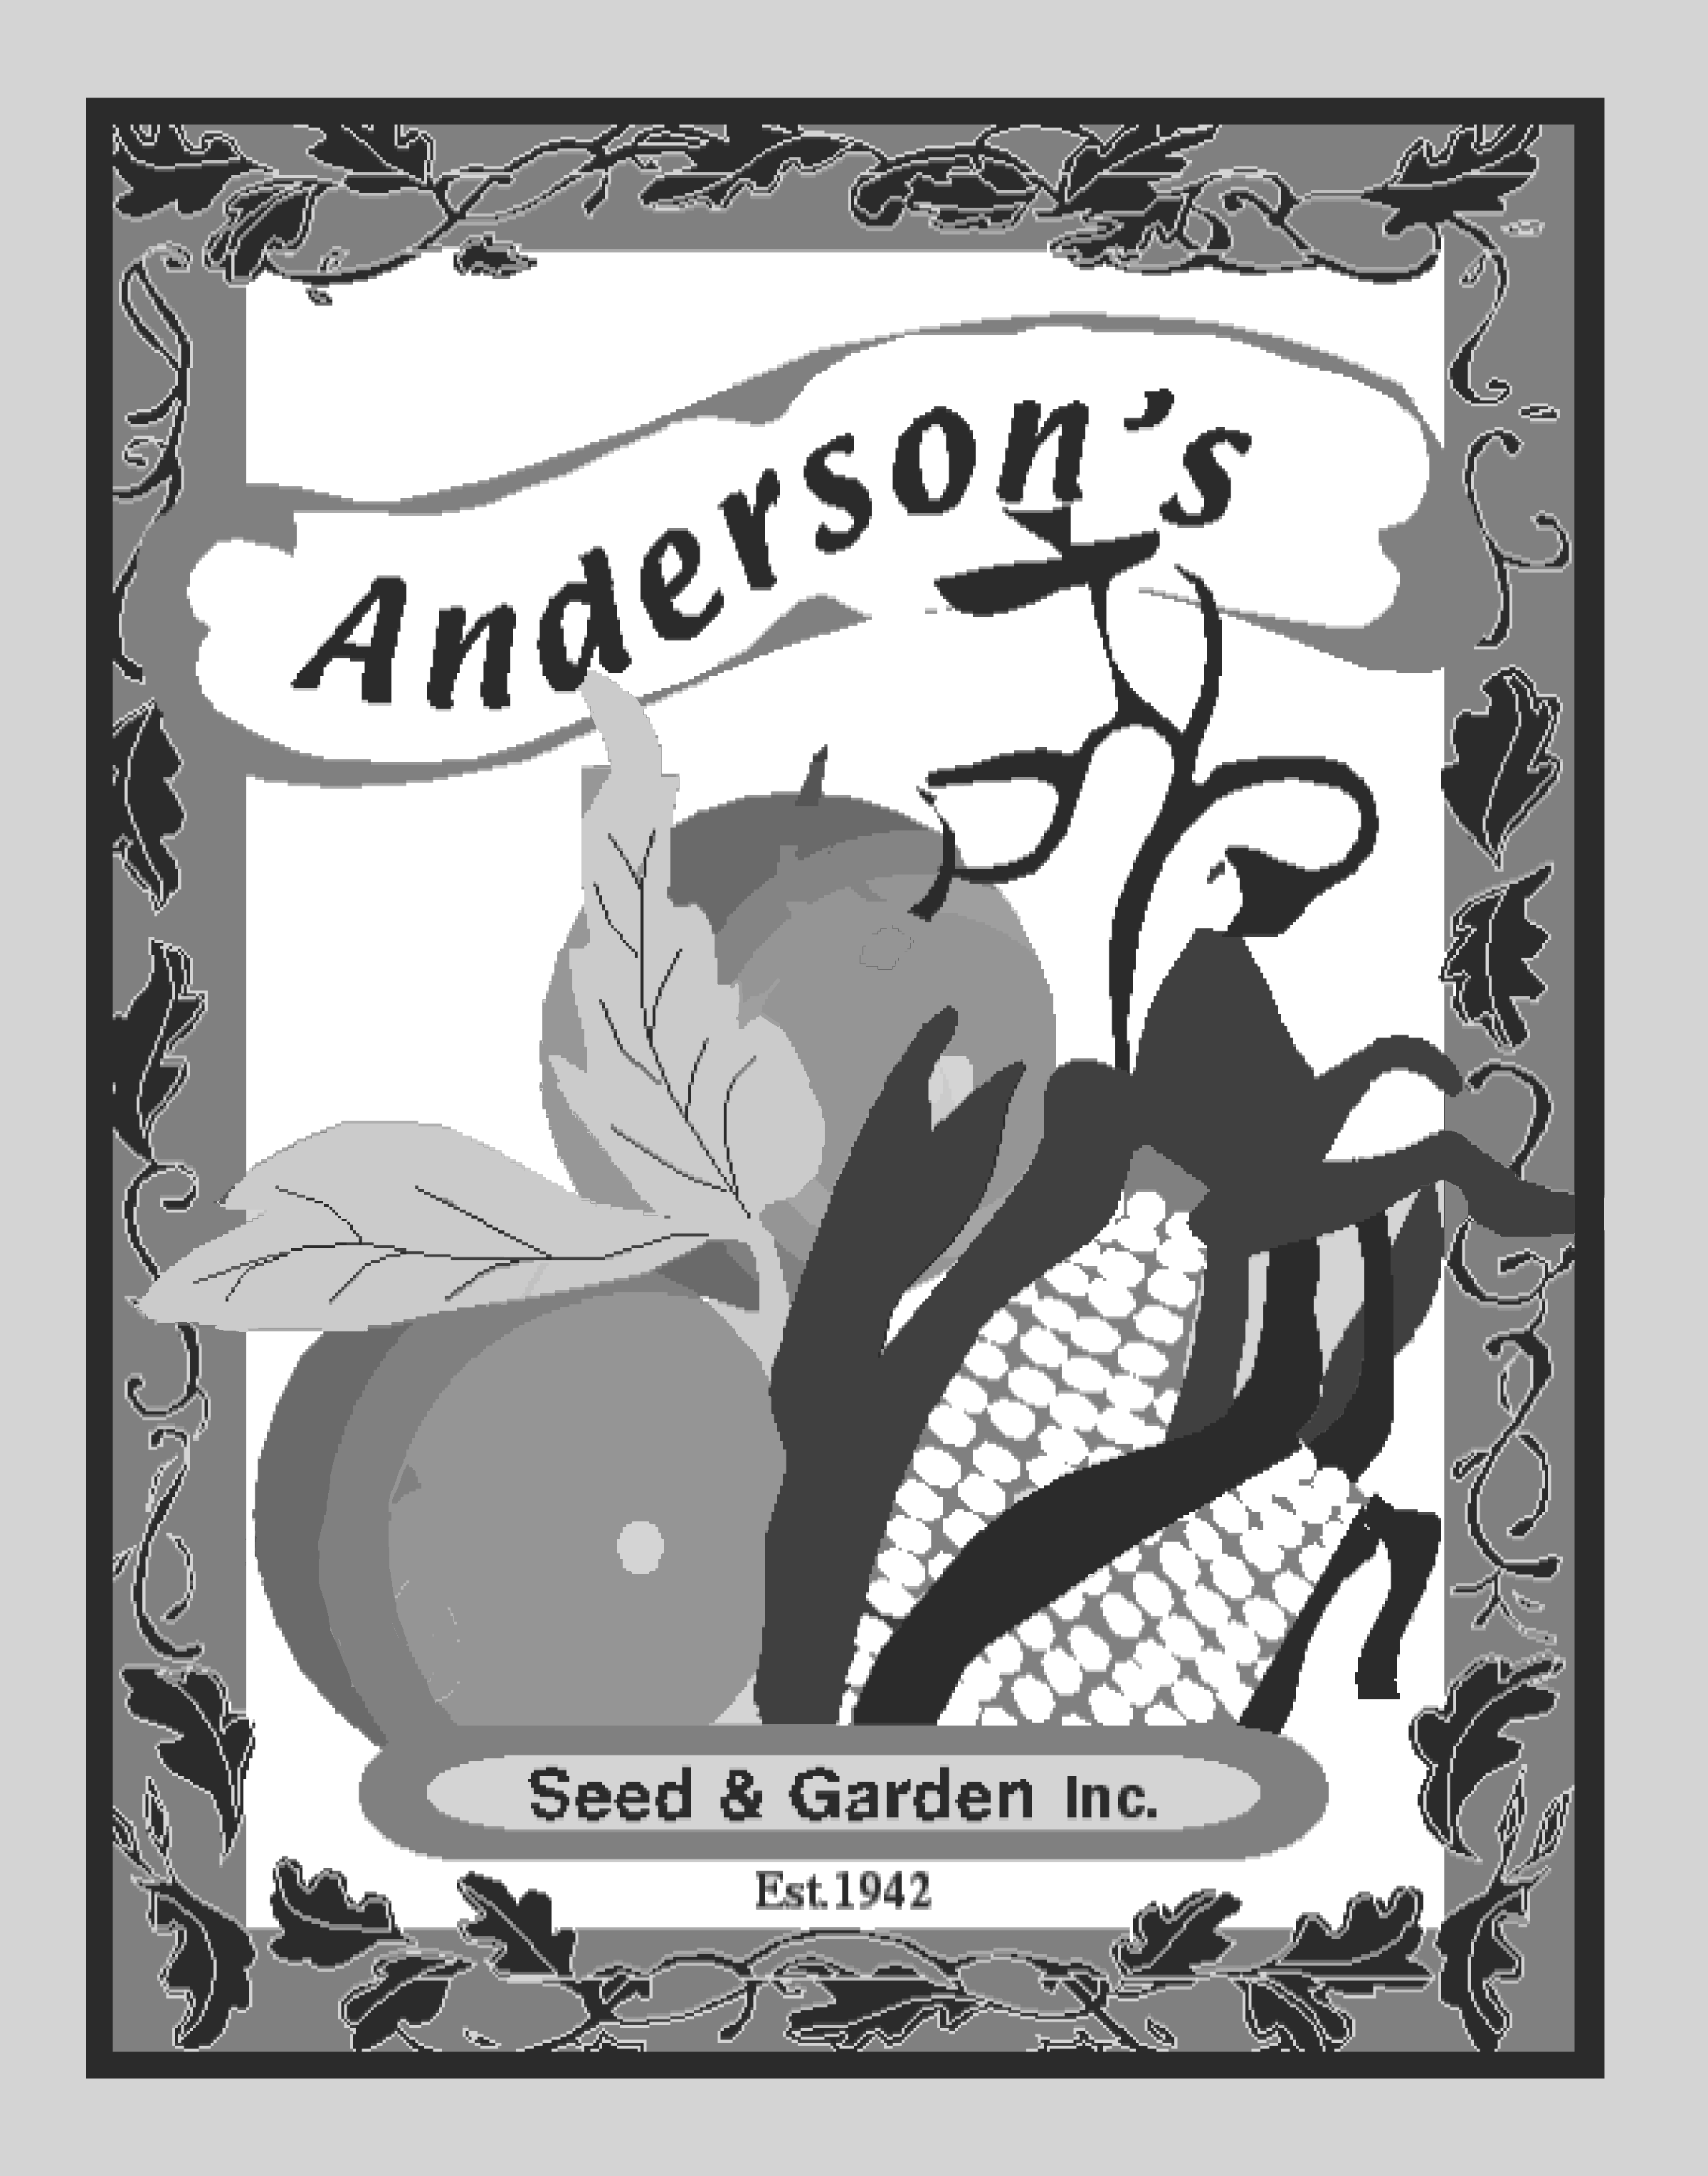 Crimson Sweet Heirloom Watermelon Seed 1 oz.